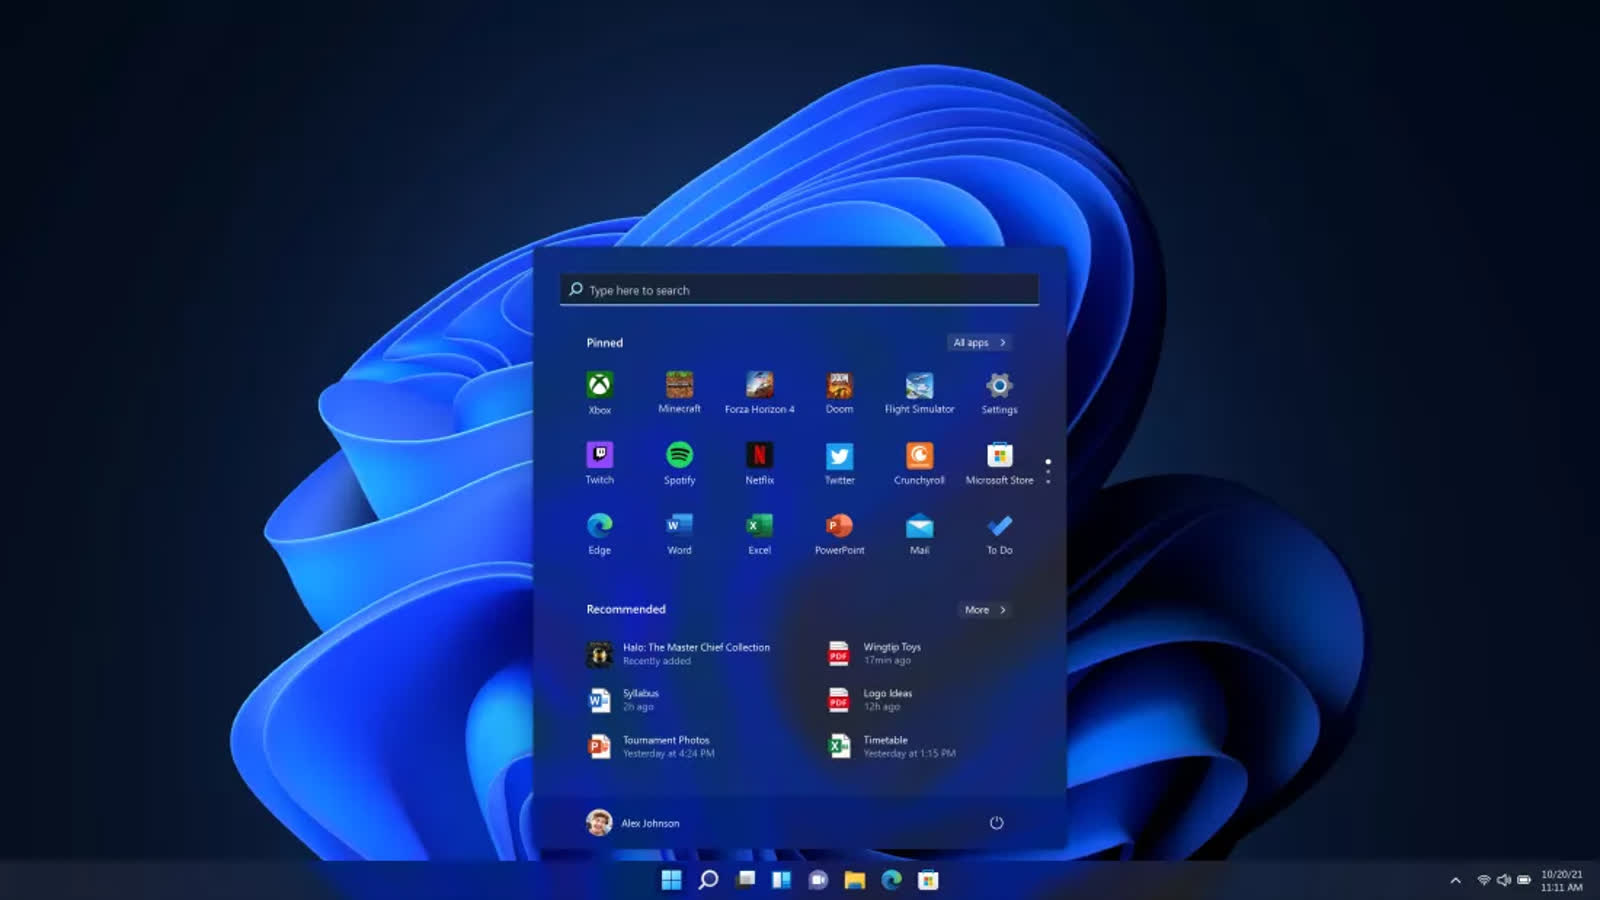 Windows 11 features could have released as an update for Windows 10, says analyst